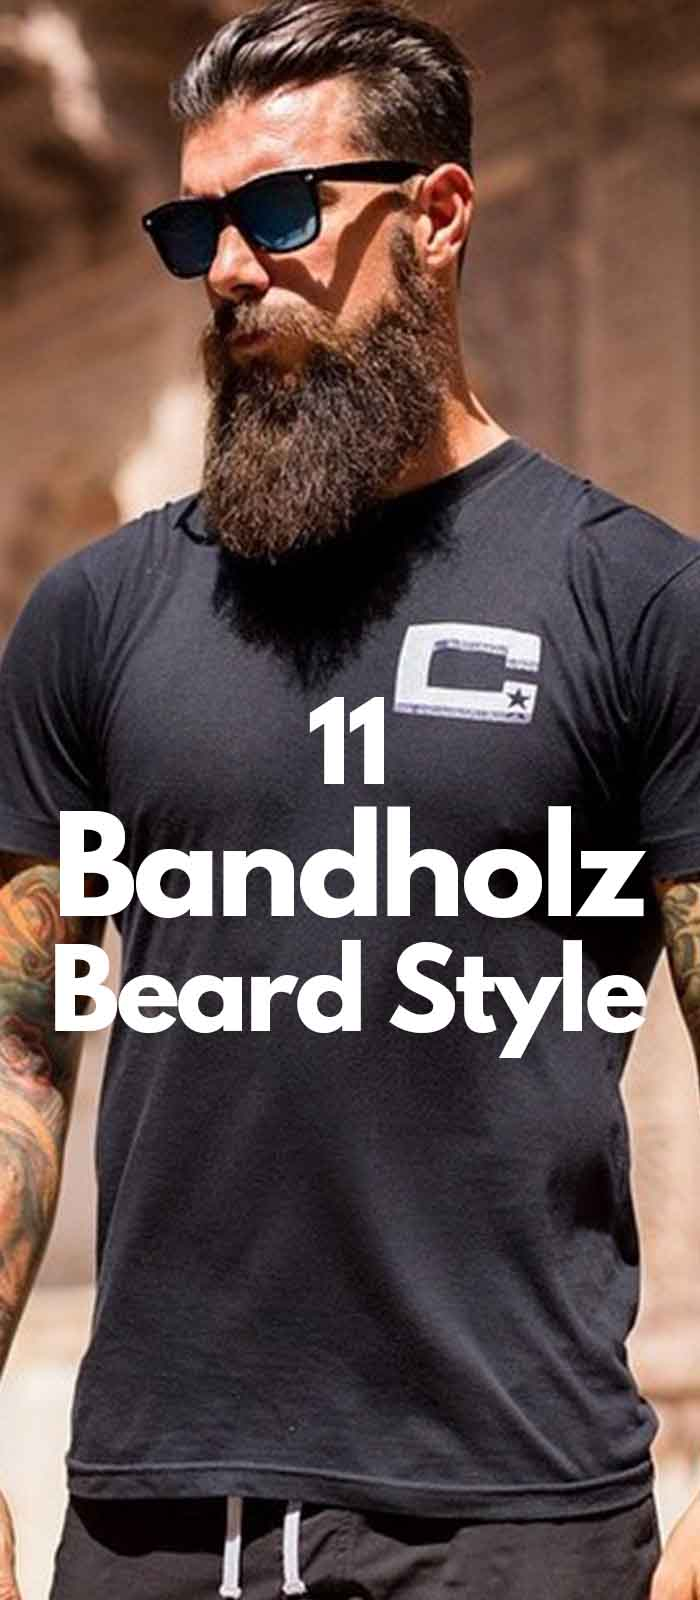 Sexy Long Bandholz Beard with Mustache style for men!